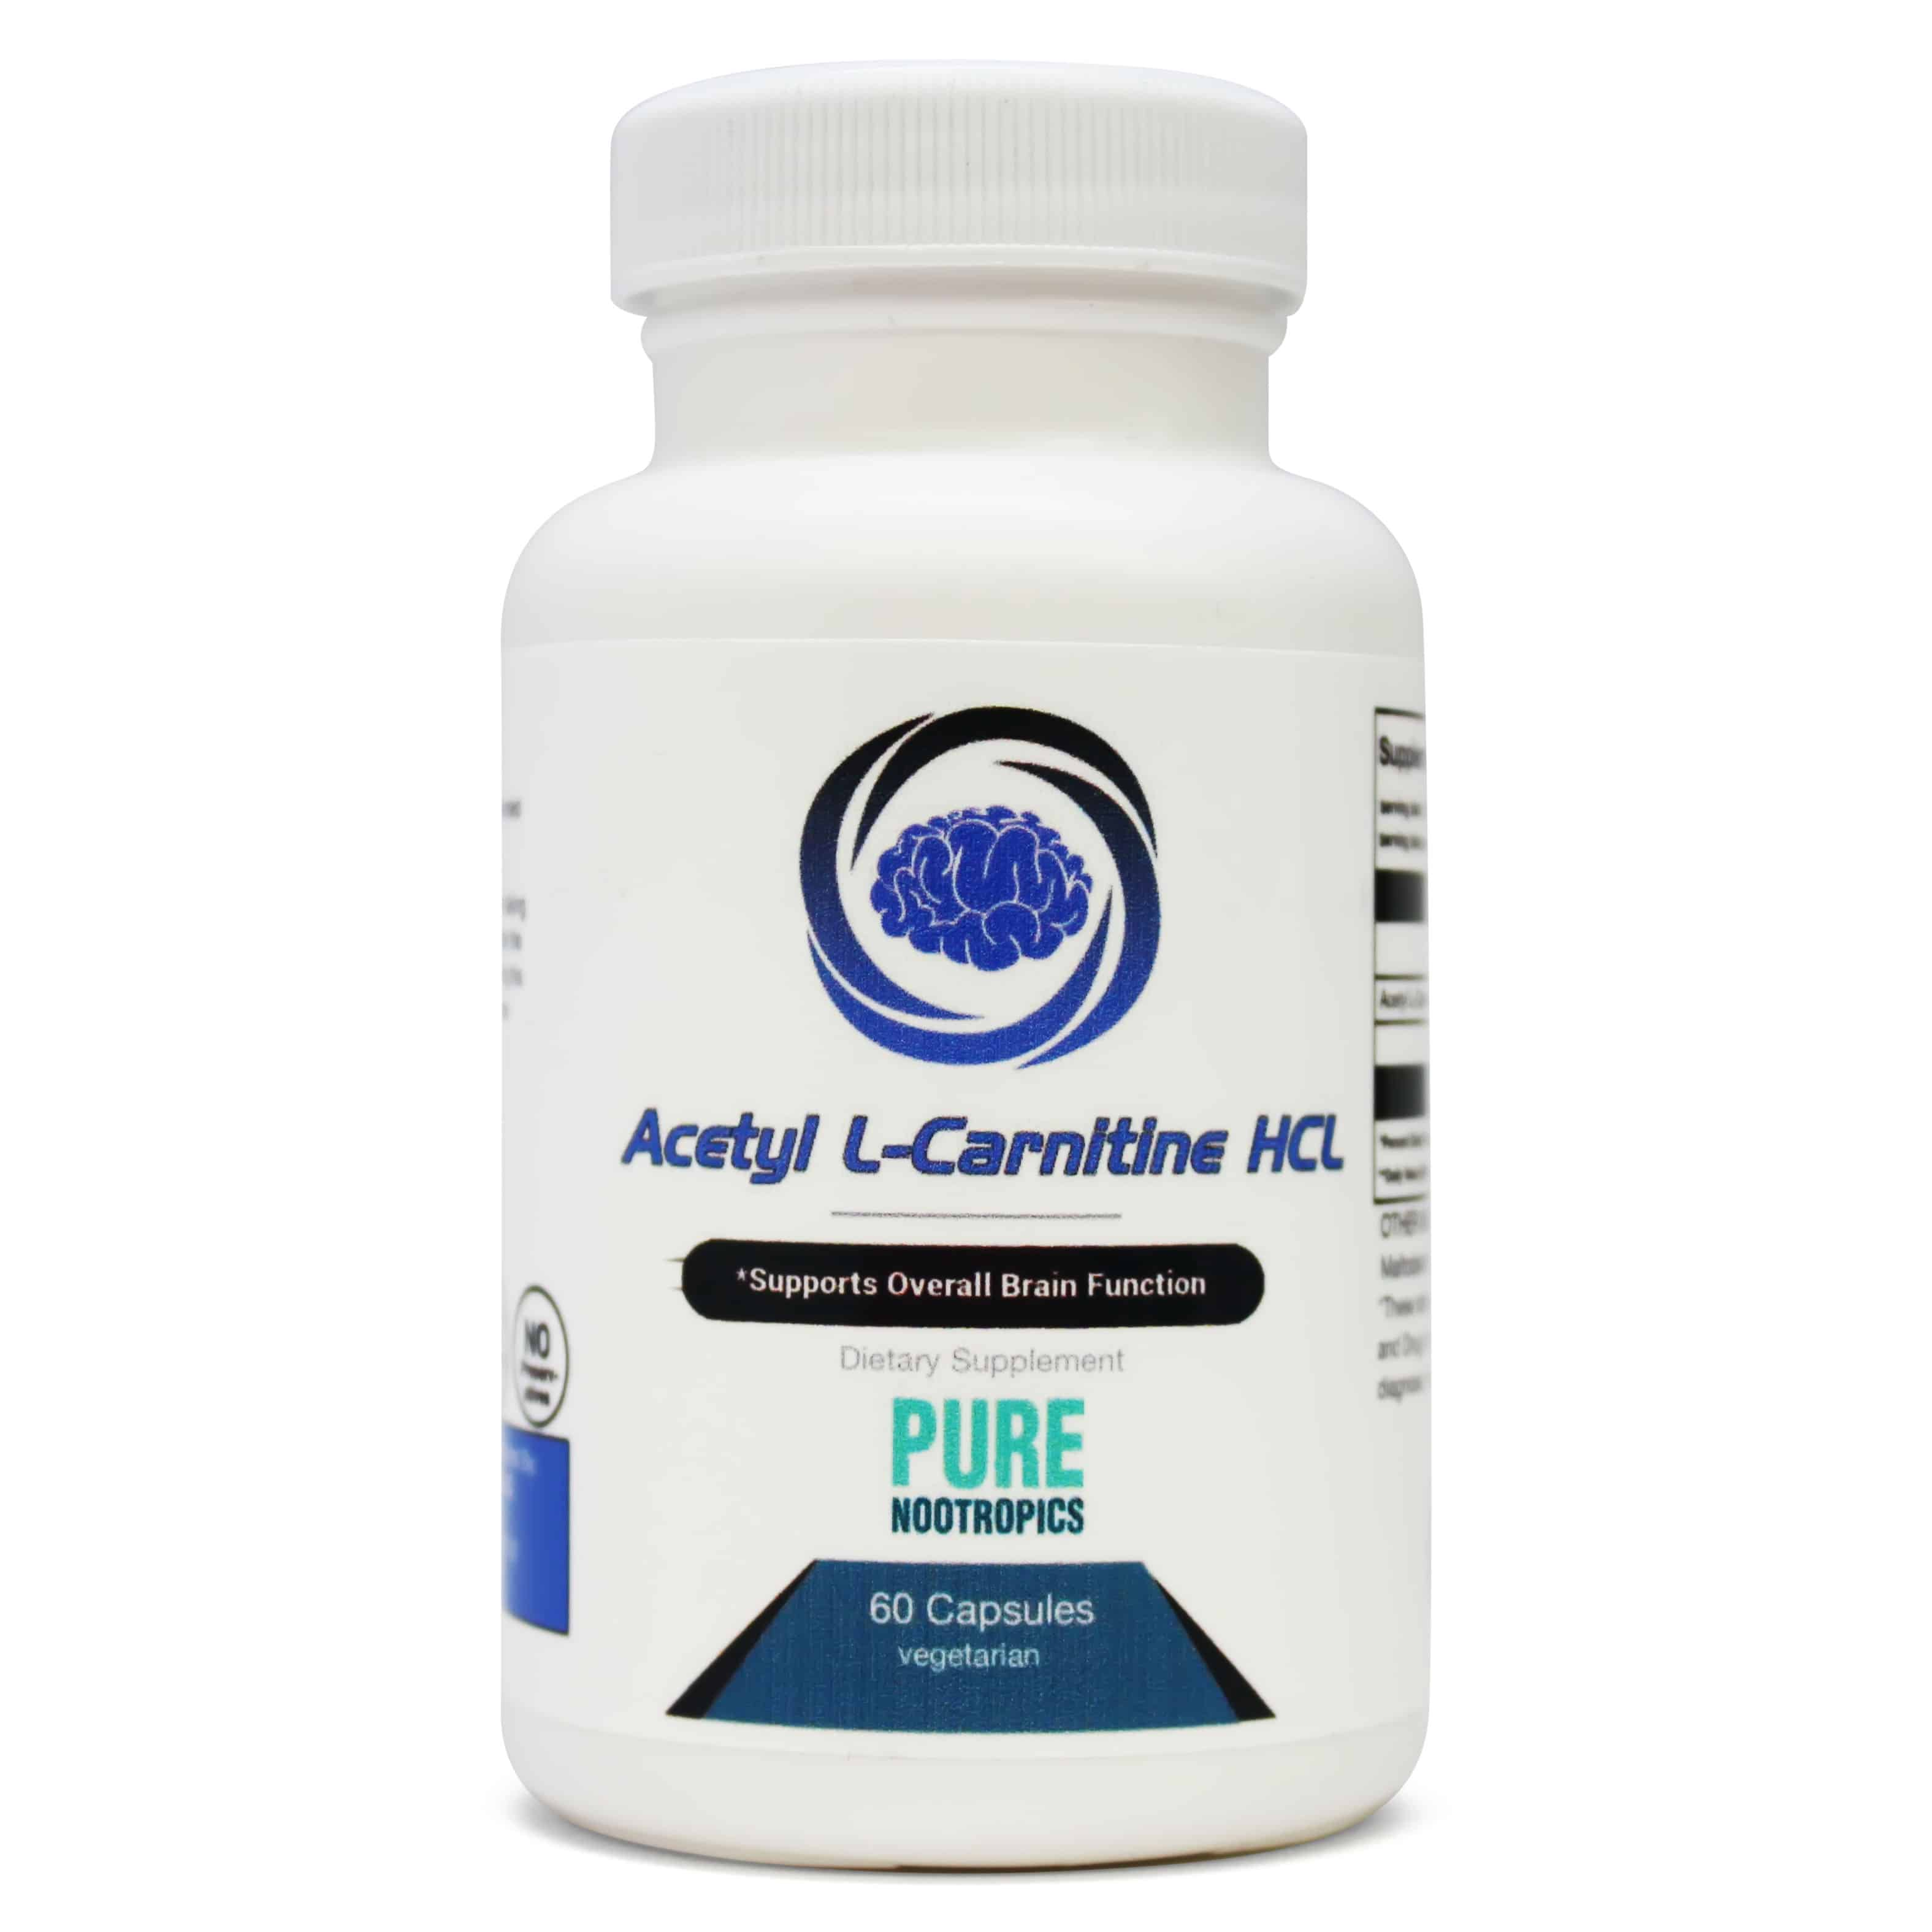 alcar  acetyl l-carnitine  powder and capsules